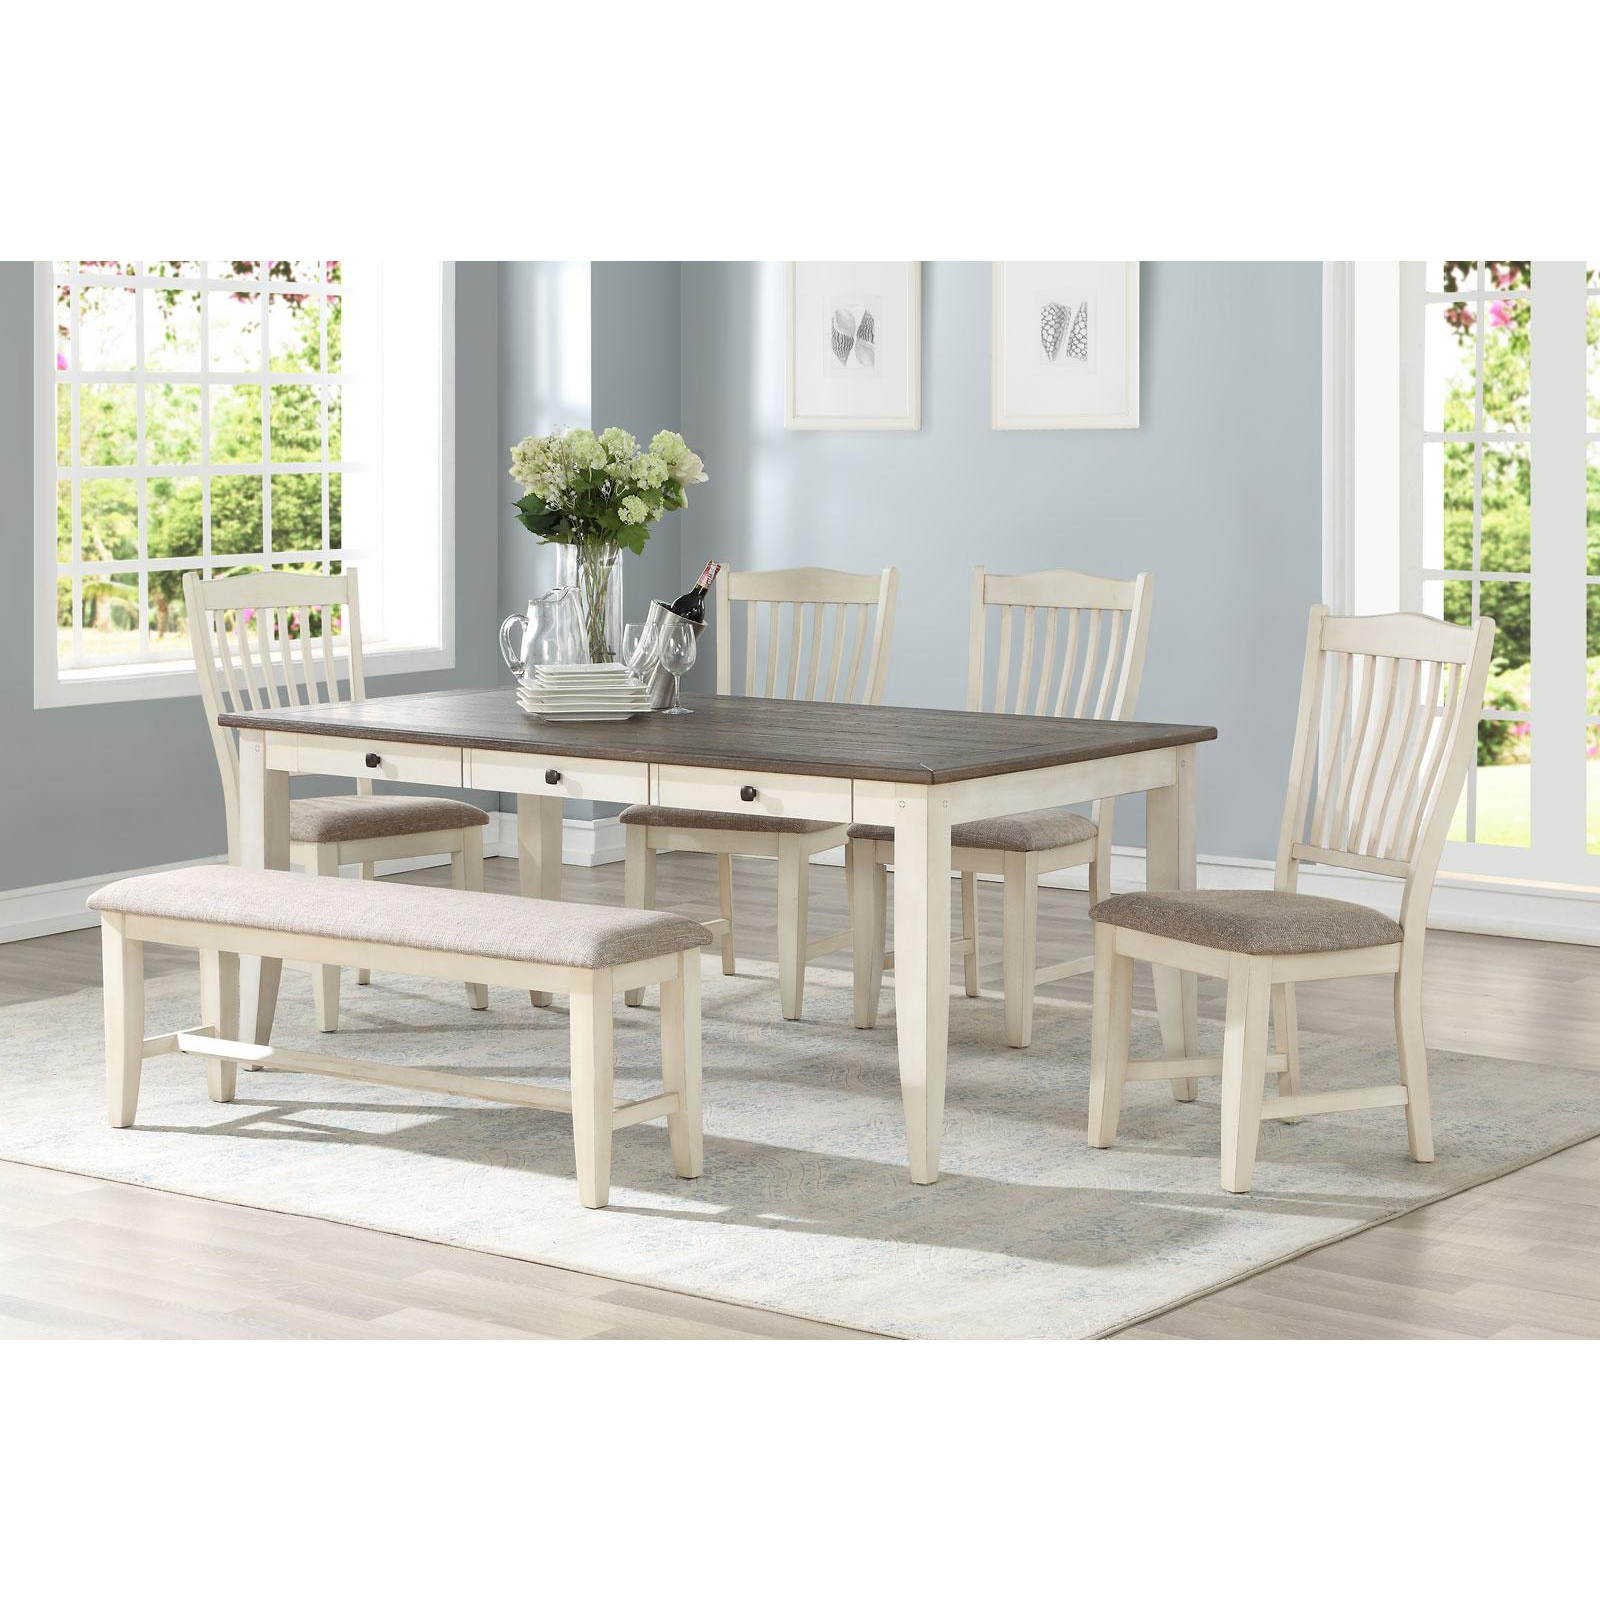 Dublin Dining Set In 2021 Dining Room Sets Dining Room Table Dining Table Chairs